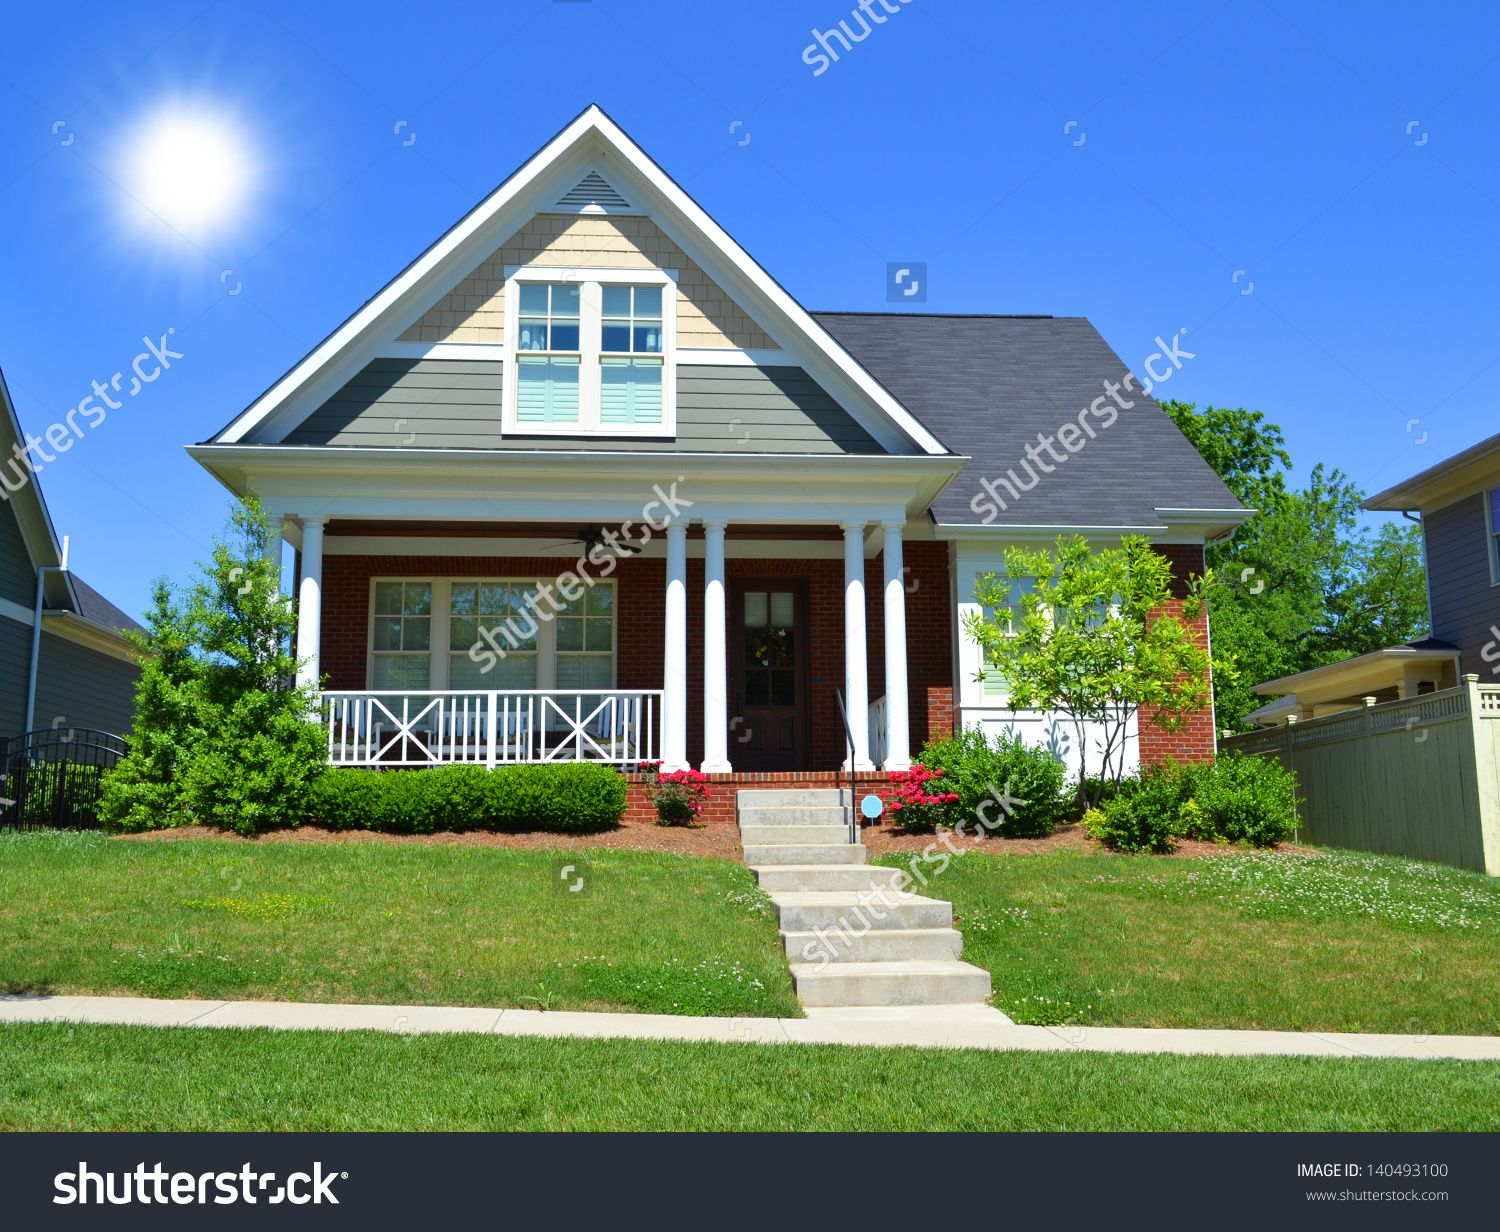 Covered front porch craftsman style home royalty free stock image - Beautiful New England Style Suburban American Home With Large Front Porch In The Summertime Stock Photo From The Largest Library Of Royalty Free Images